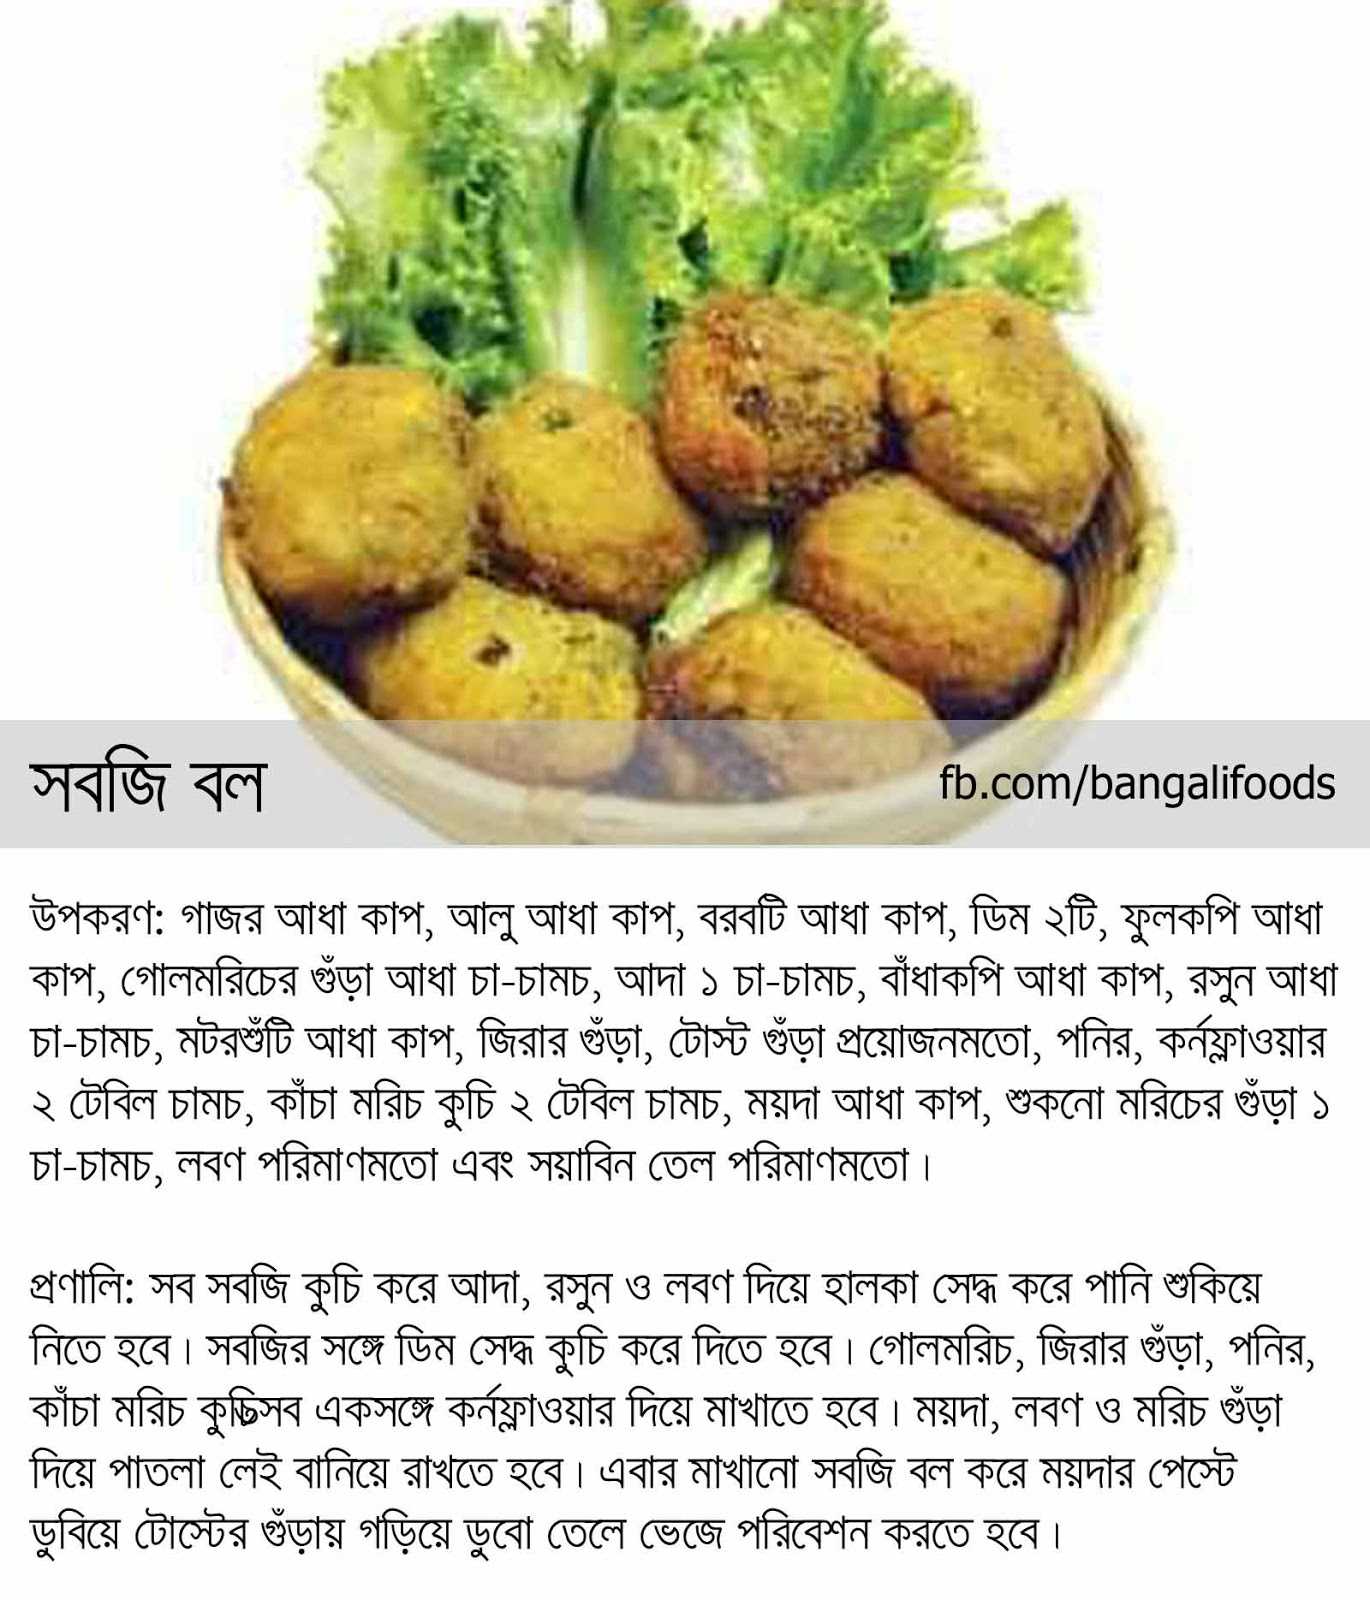 Bangali foods snack food recipes in bengali bengali recipe sobji ball forumfinder Choice Image